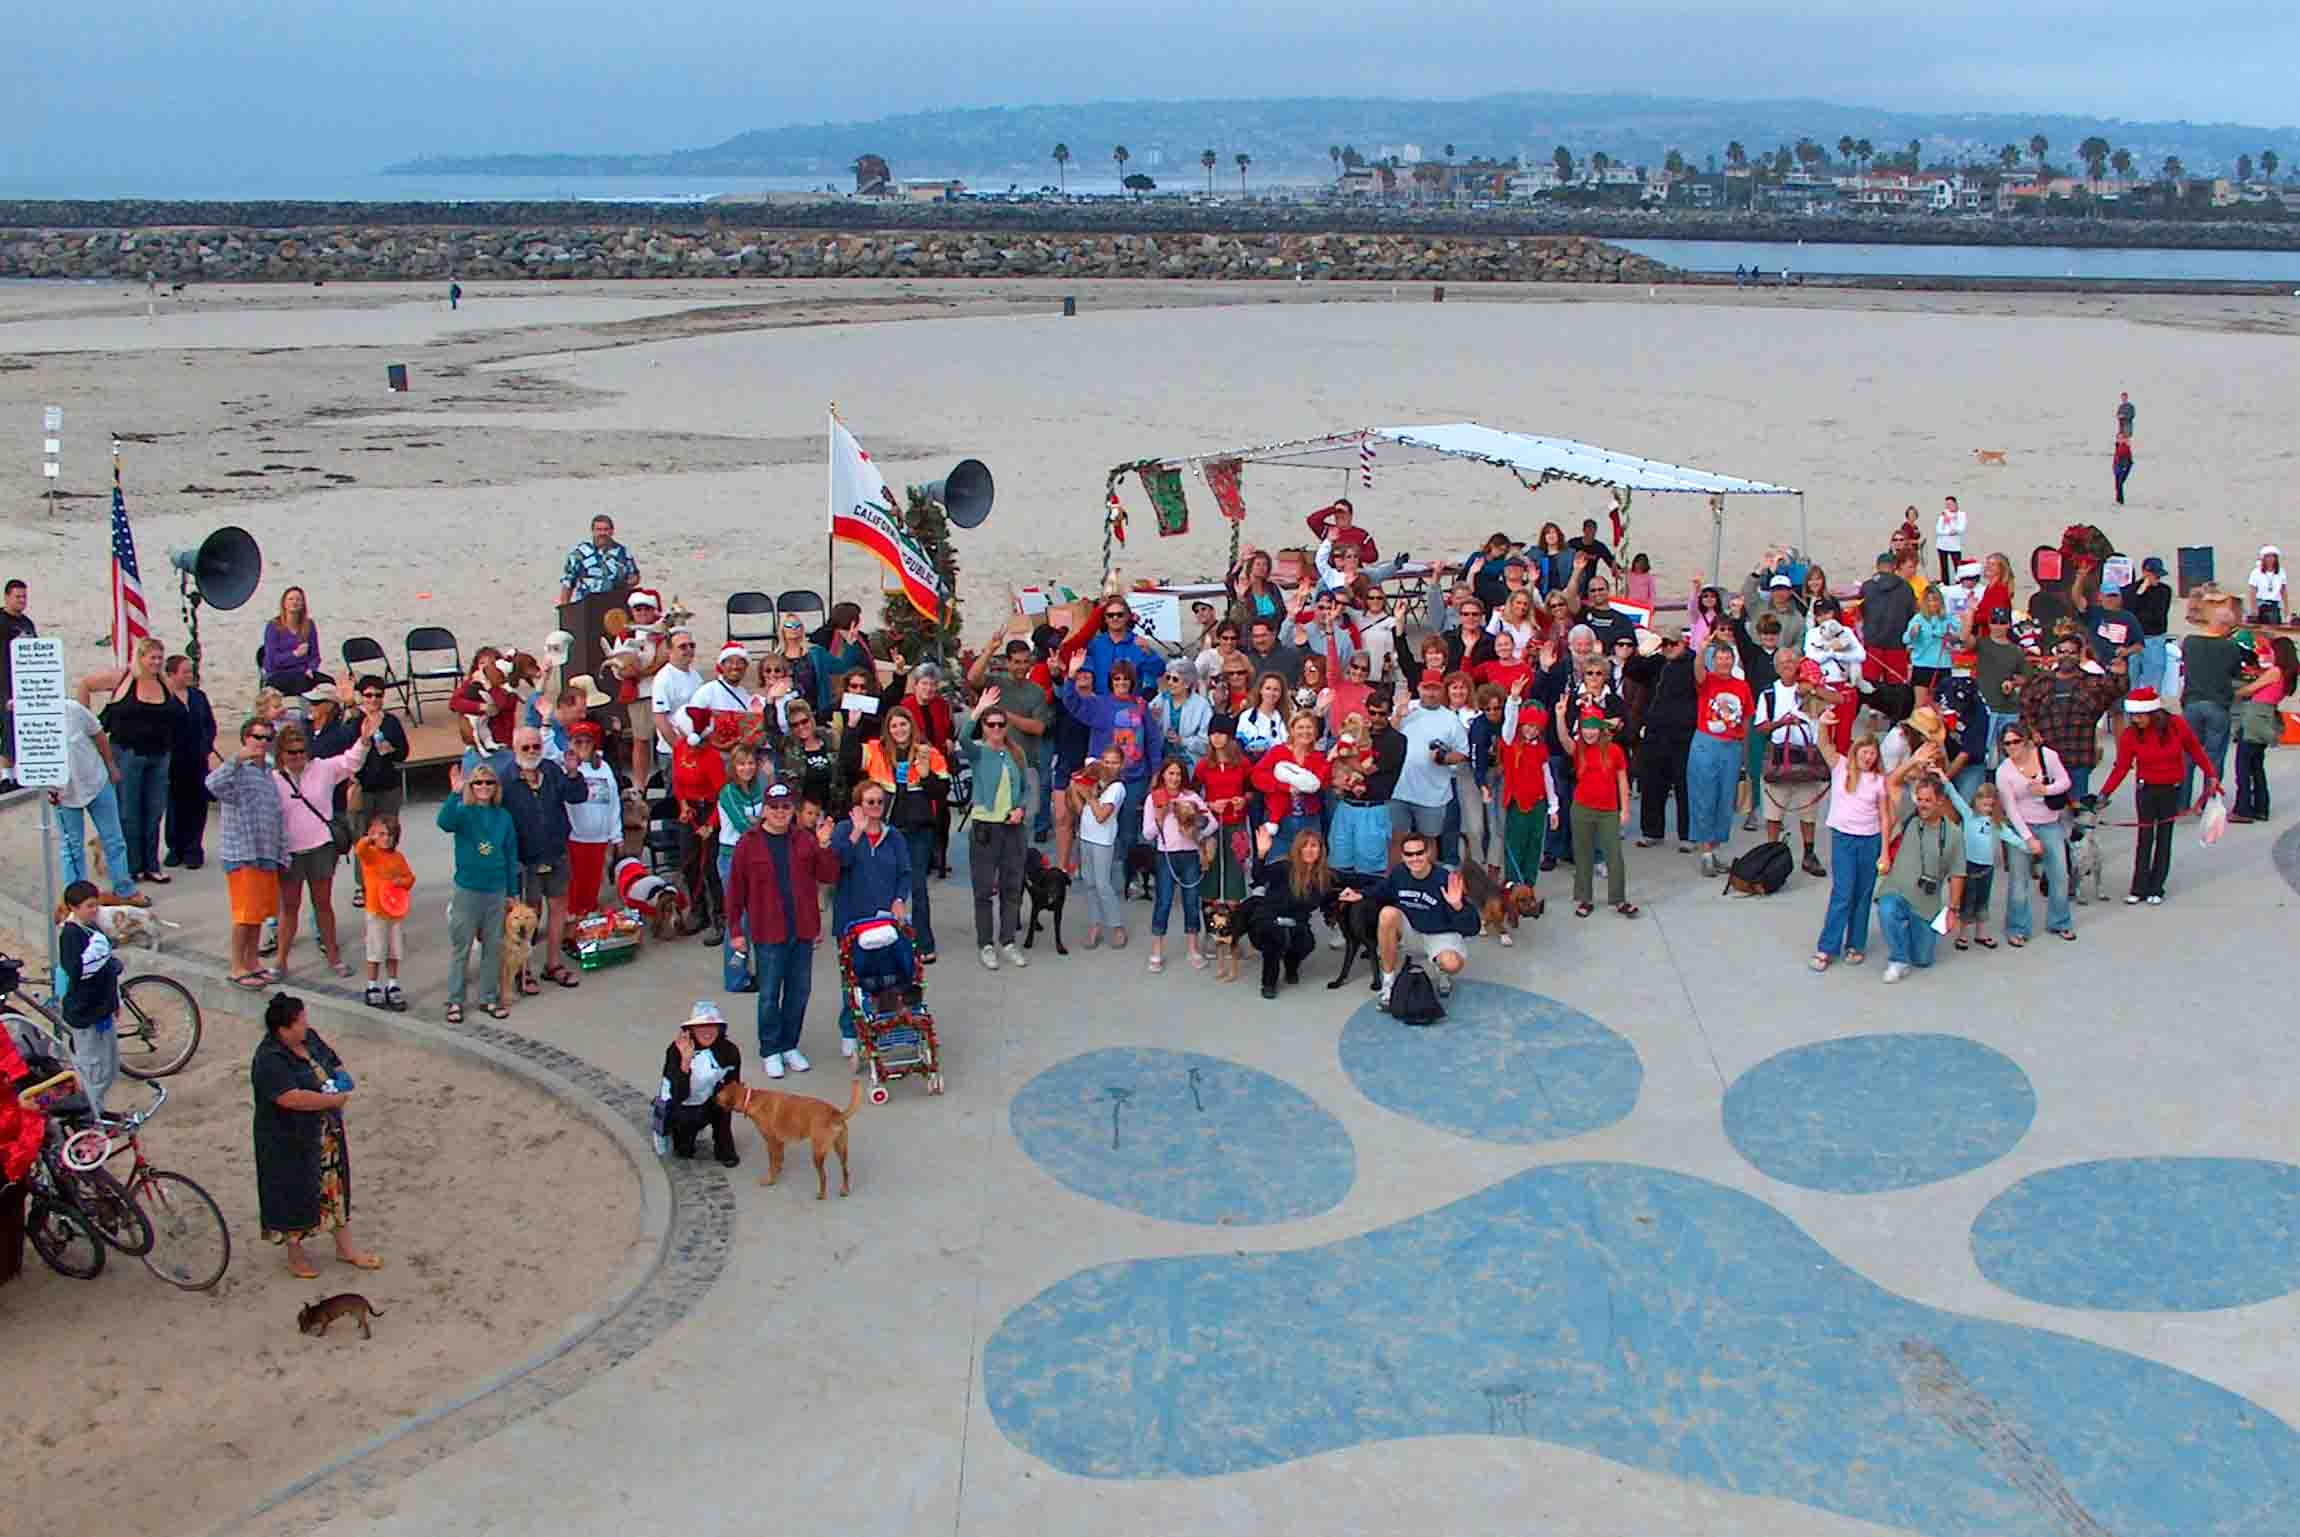 Dog Beach community.  Photo: (c) Barb Ayers, DogDiary.org